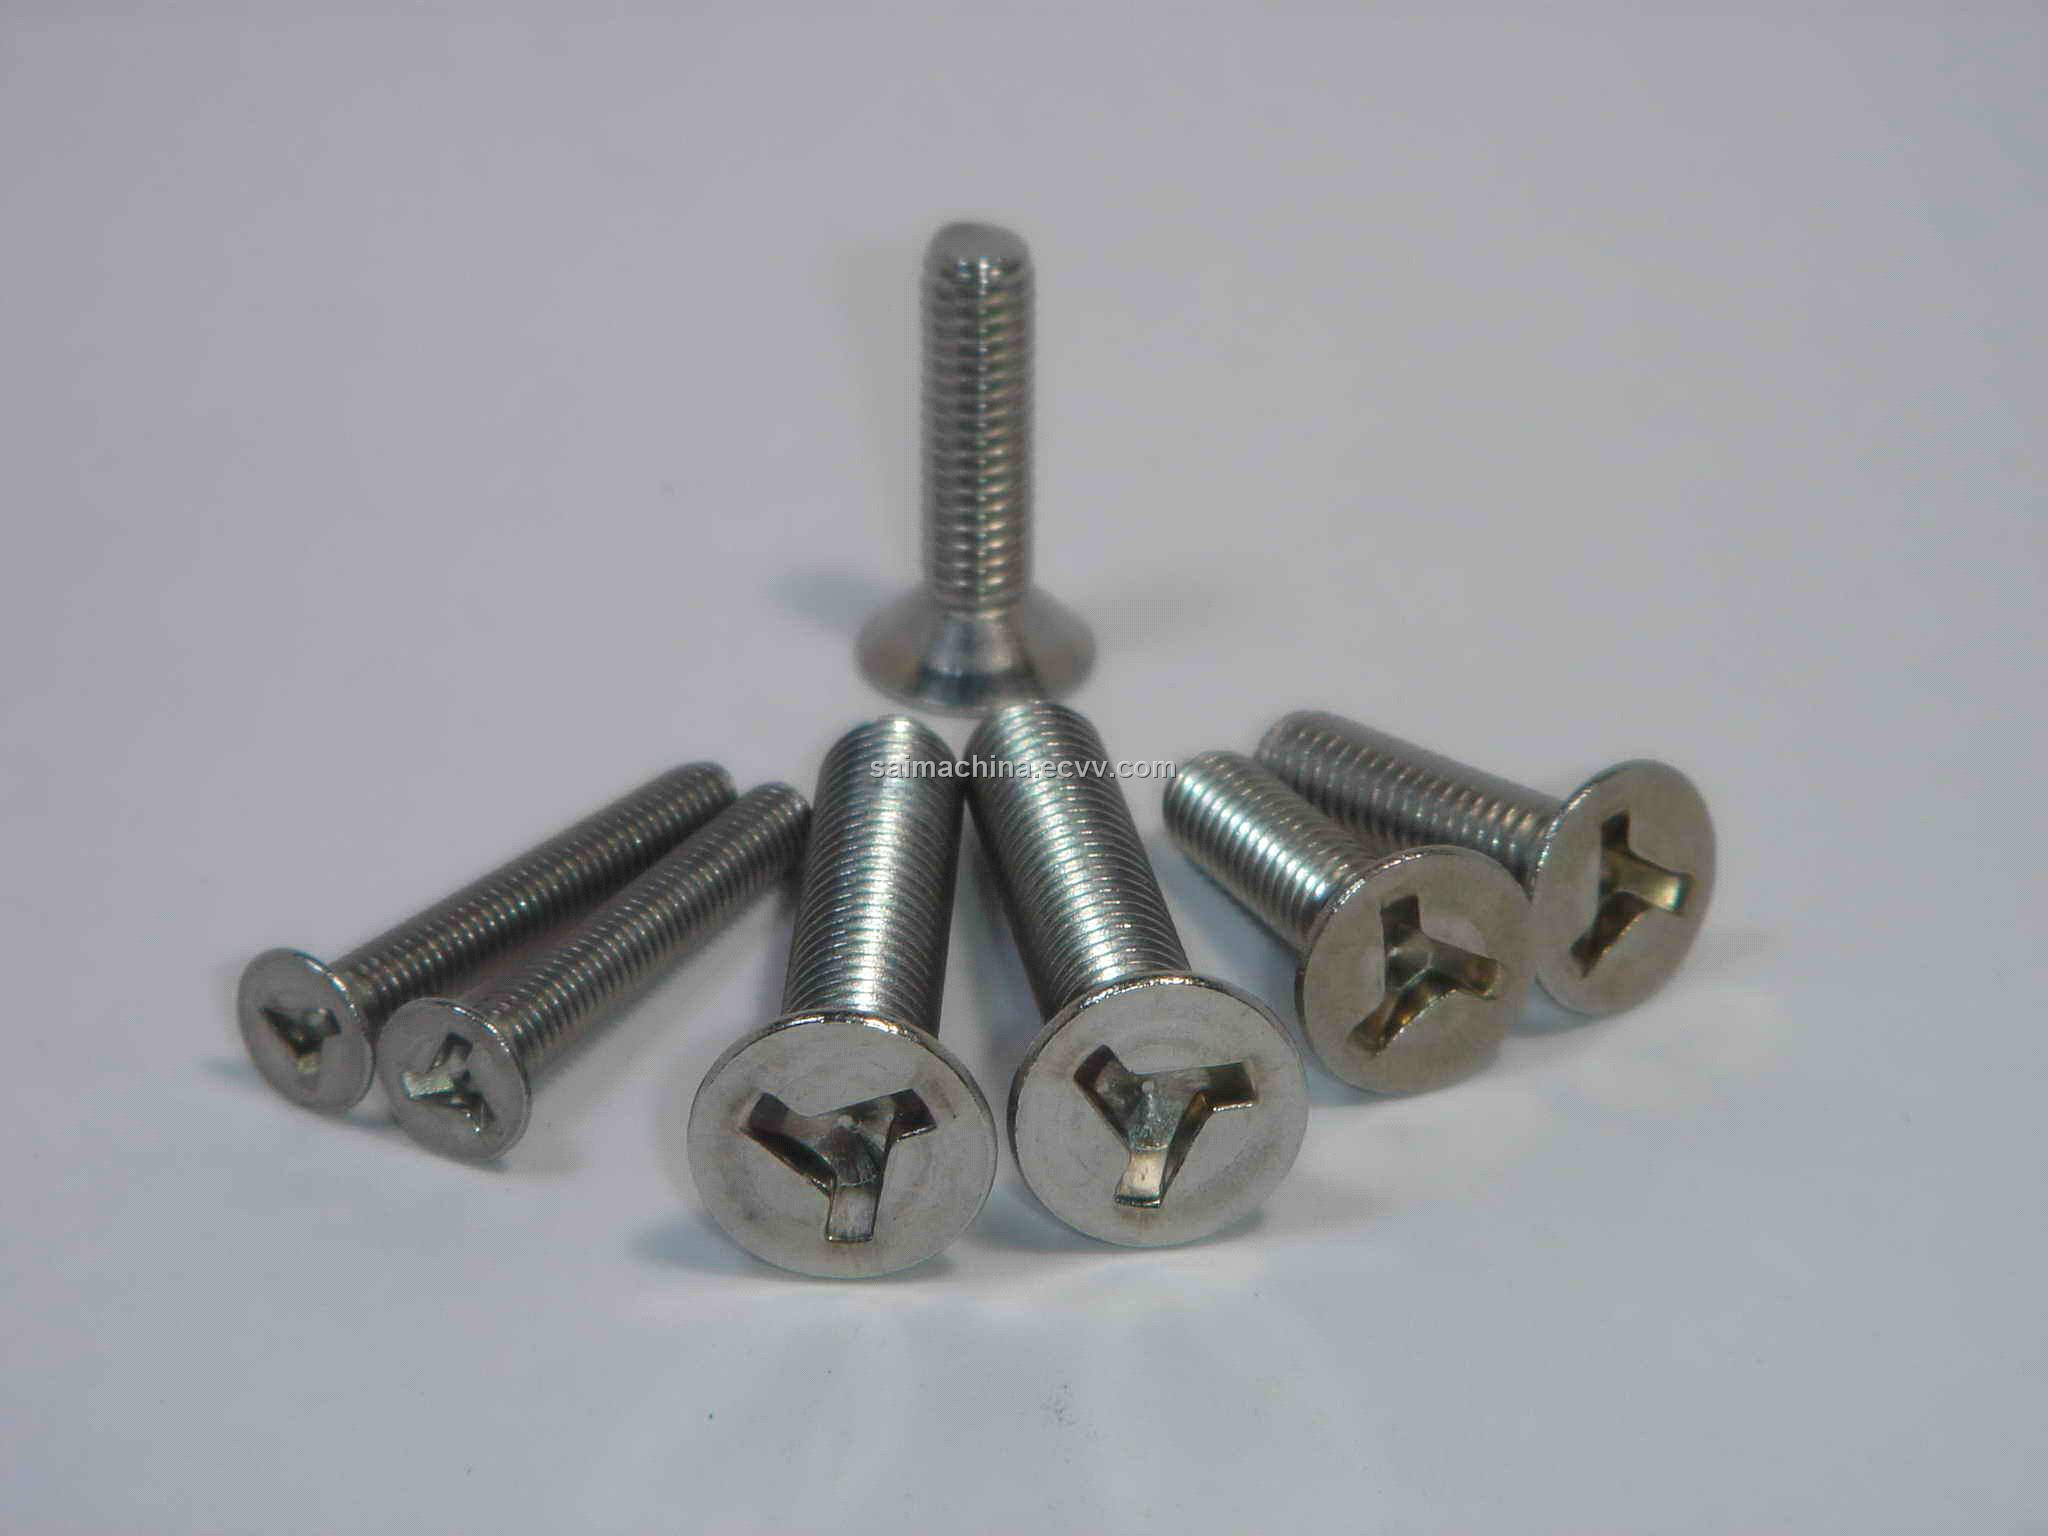 Screw with three slots